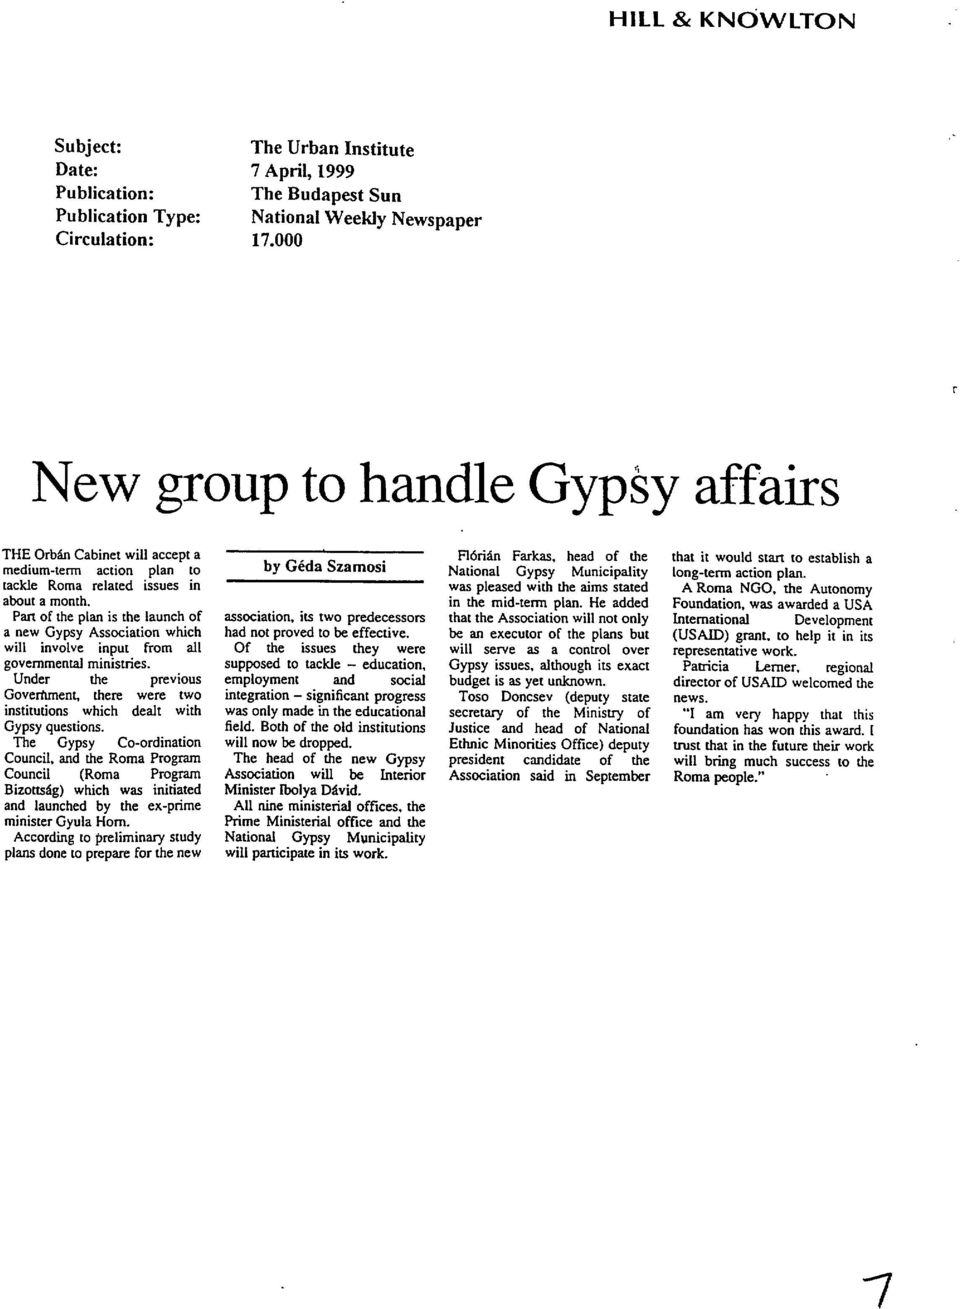 Pan of the plan is the launch of a new Gypsy Association which will involve input from all governmental ministries.